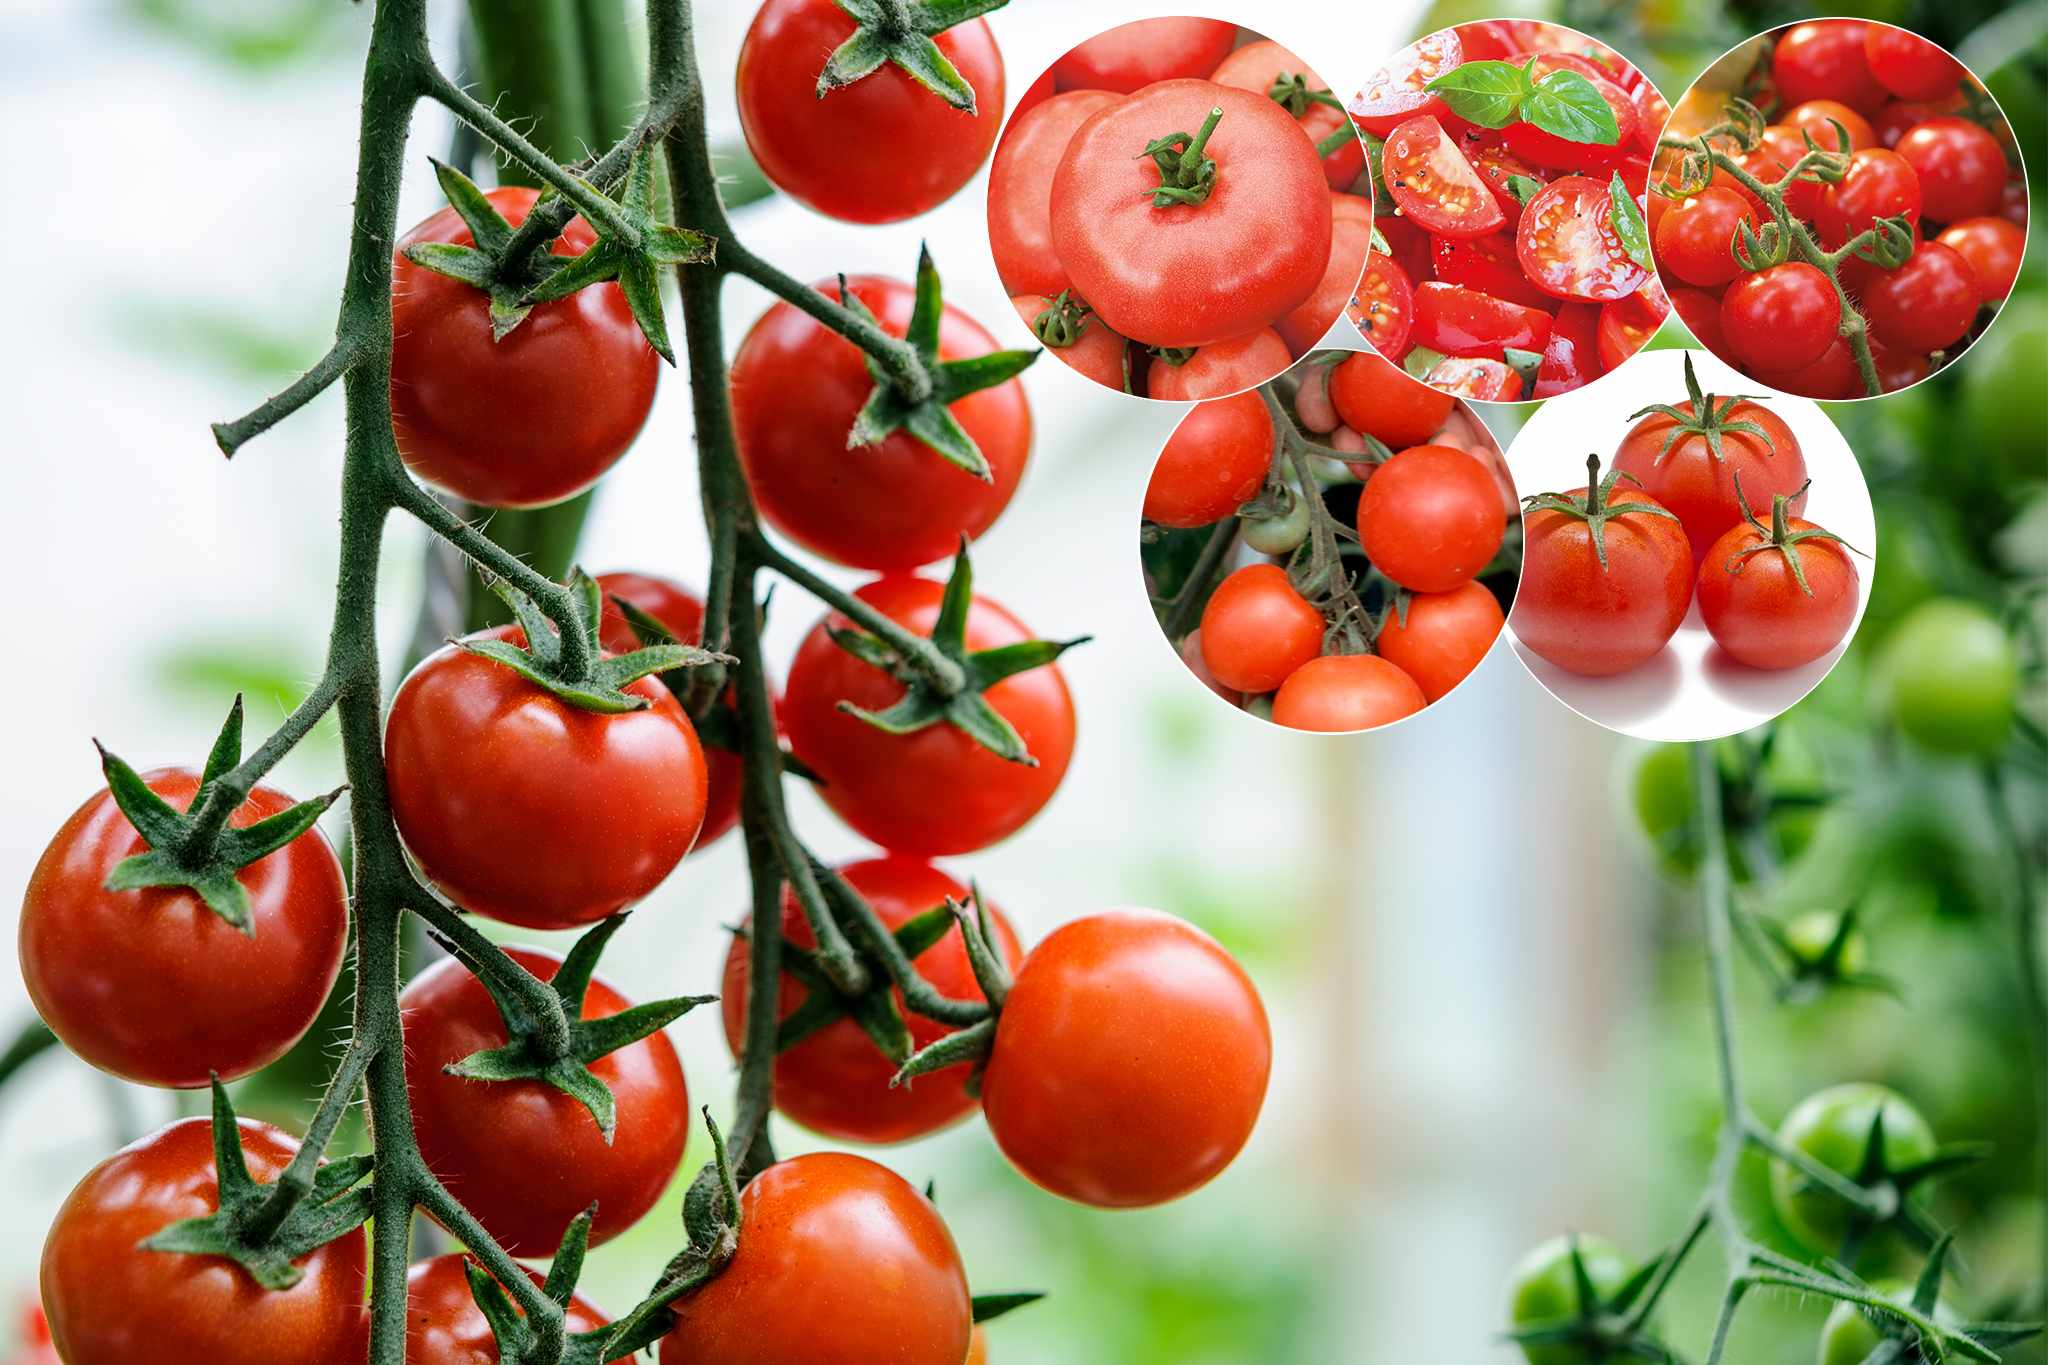 tandm-free-tomato-collection-april-2048-1365